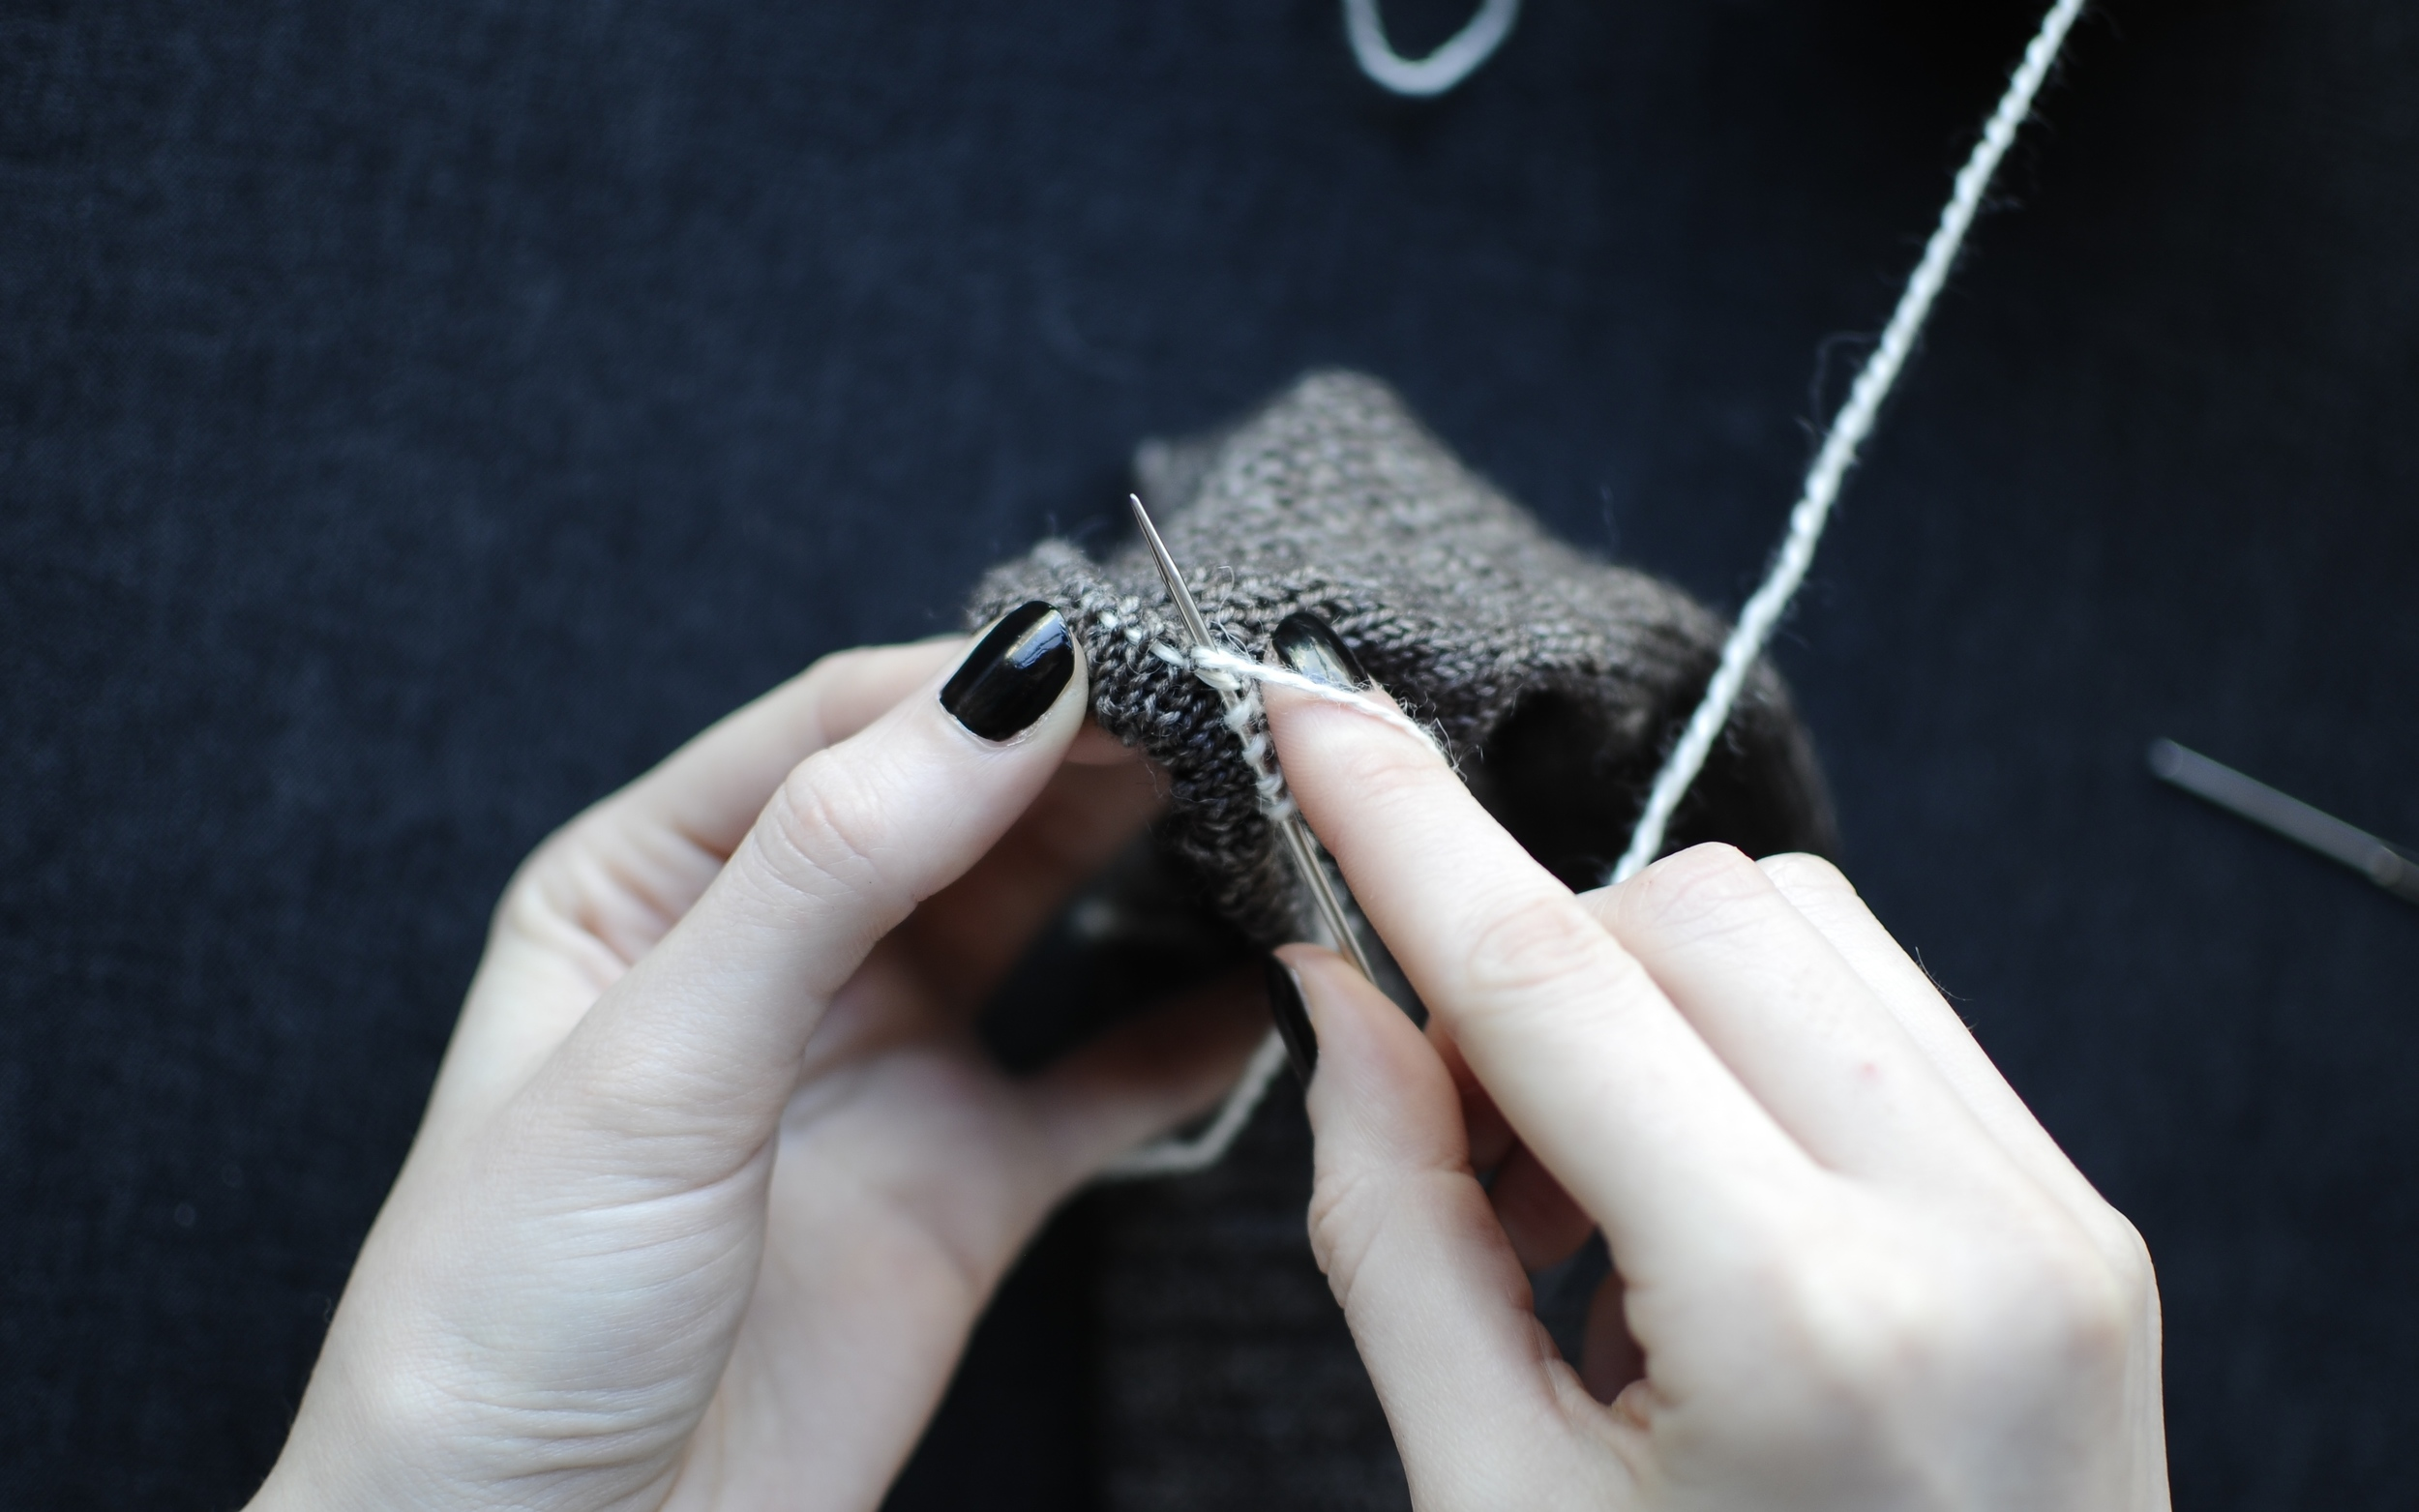 5. Continue to repeat Steps 3 - 4 to pick up all the stitches around the circumference of the cuff.